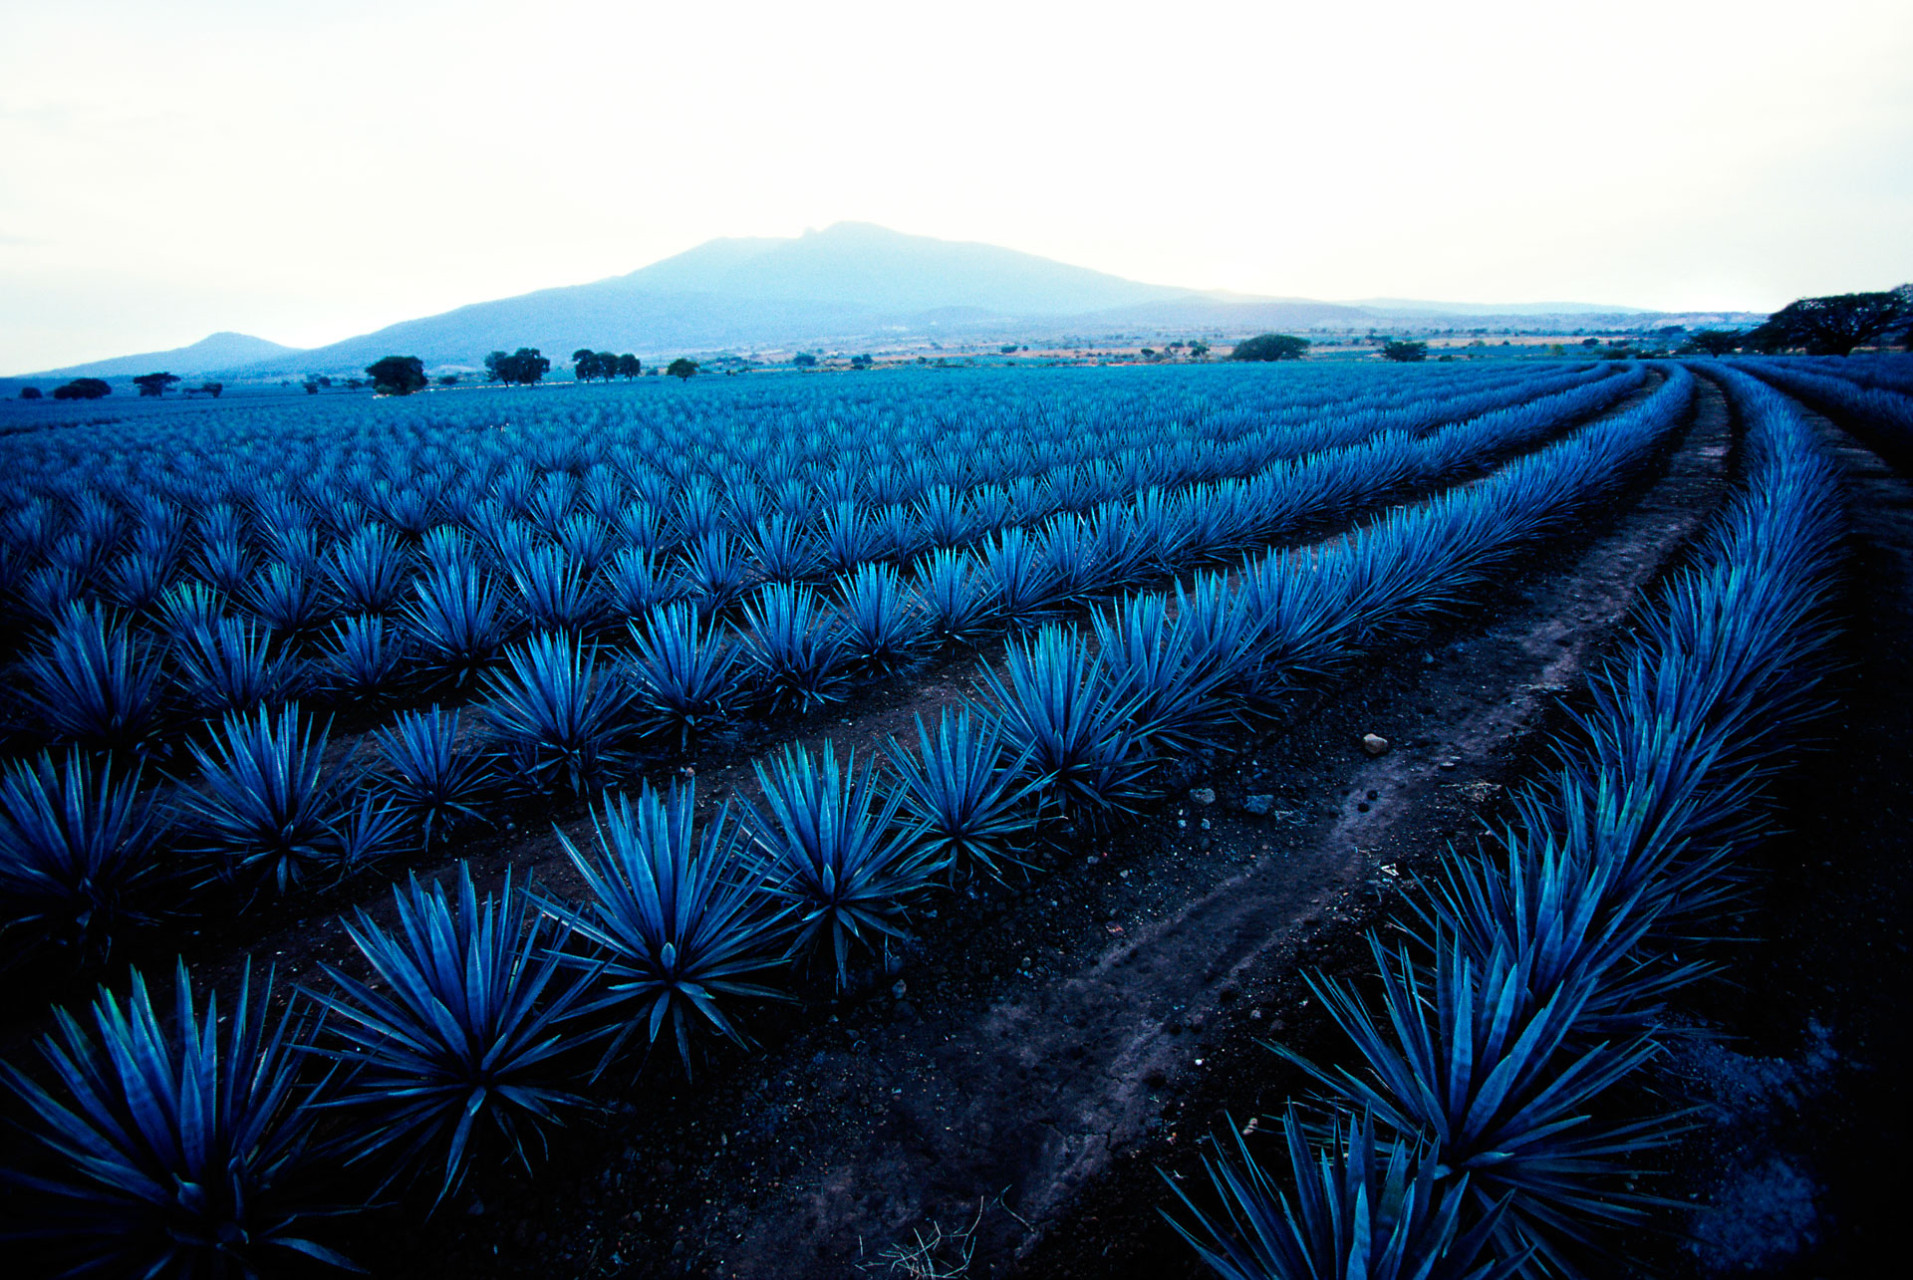 Tequila. A town – Mexico